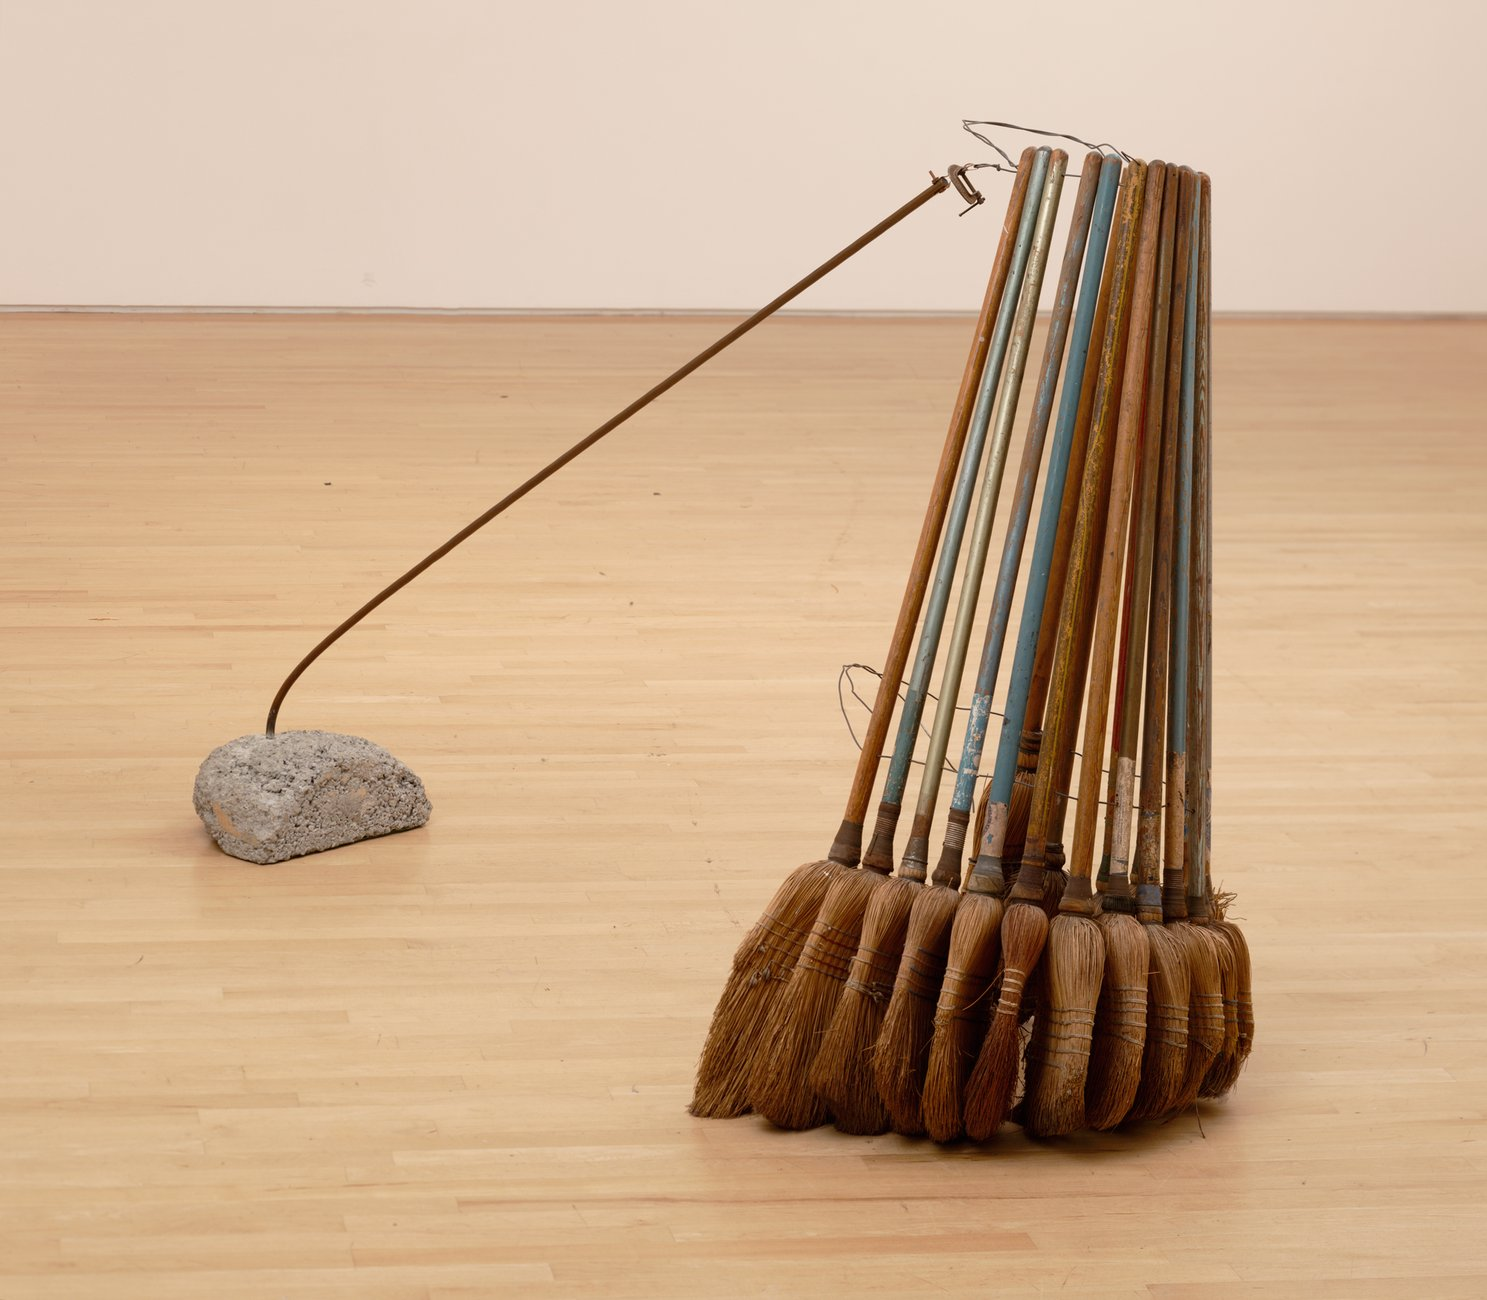 Artwork image, David Ireland's Broom Collection with Boom